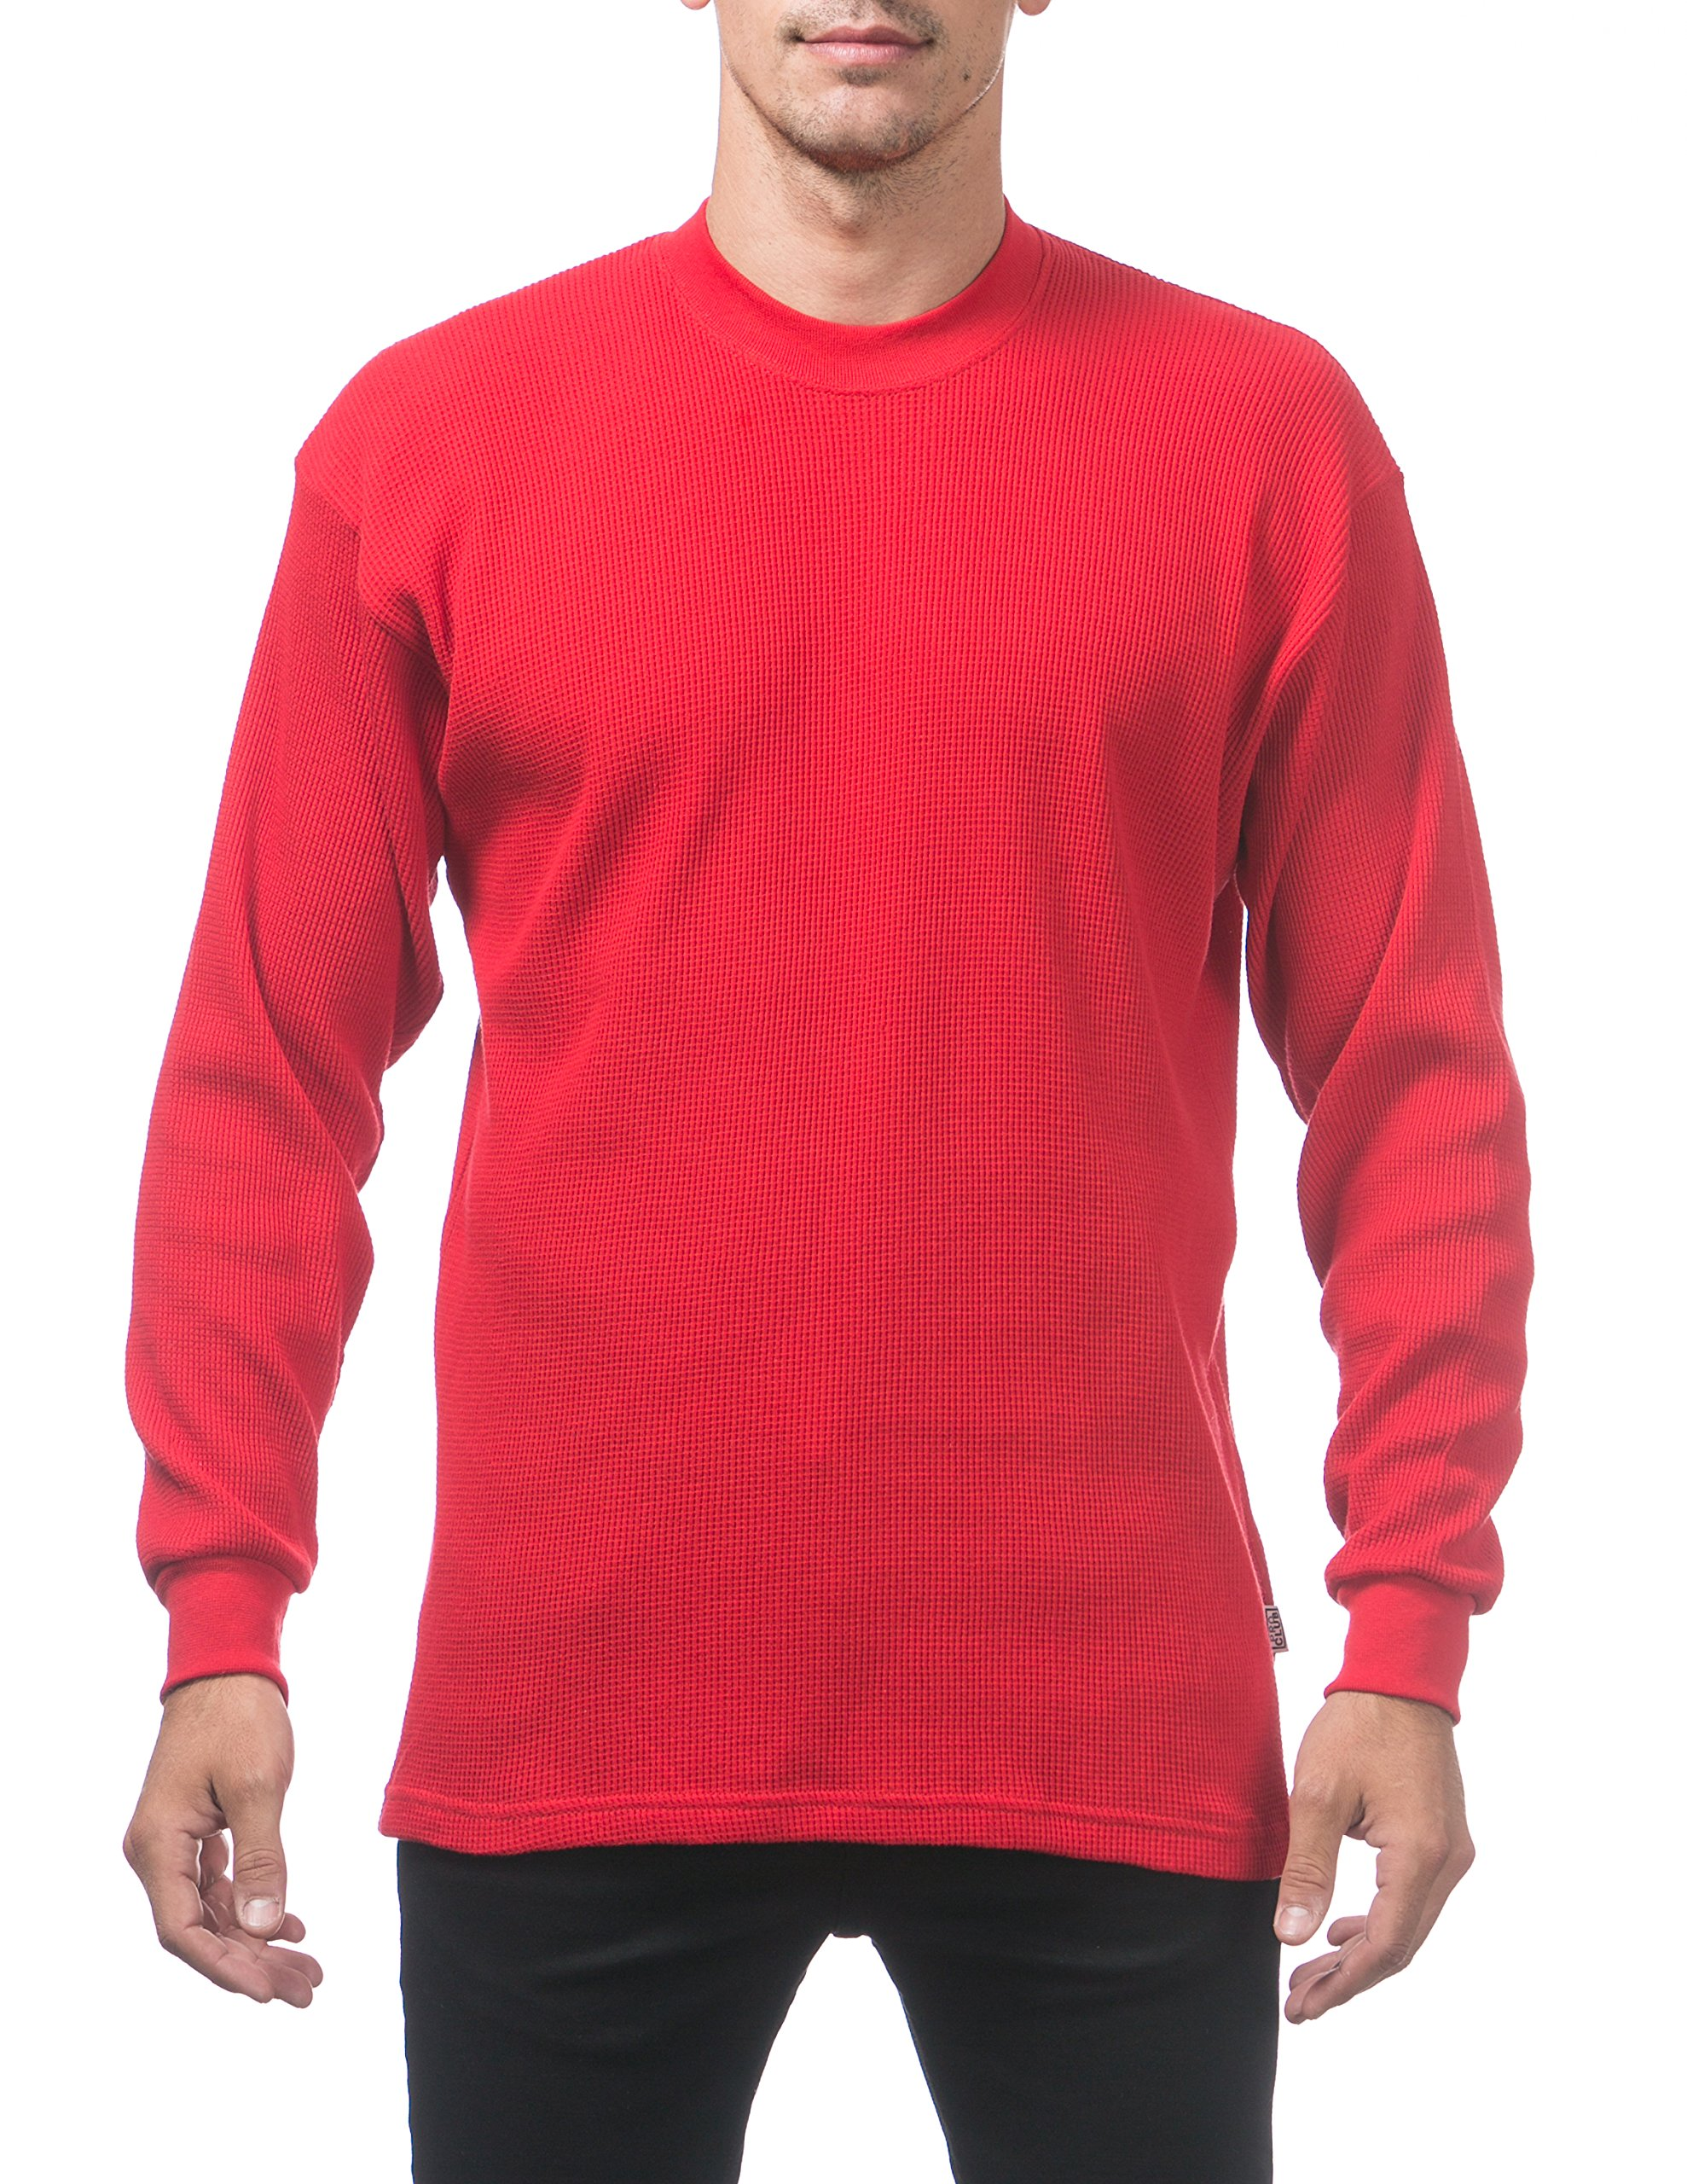 Pro Club Men's Heavyweight Cotton Long Sleeve Thermal Top, 4X-Large, Red by Pro Club